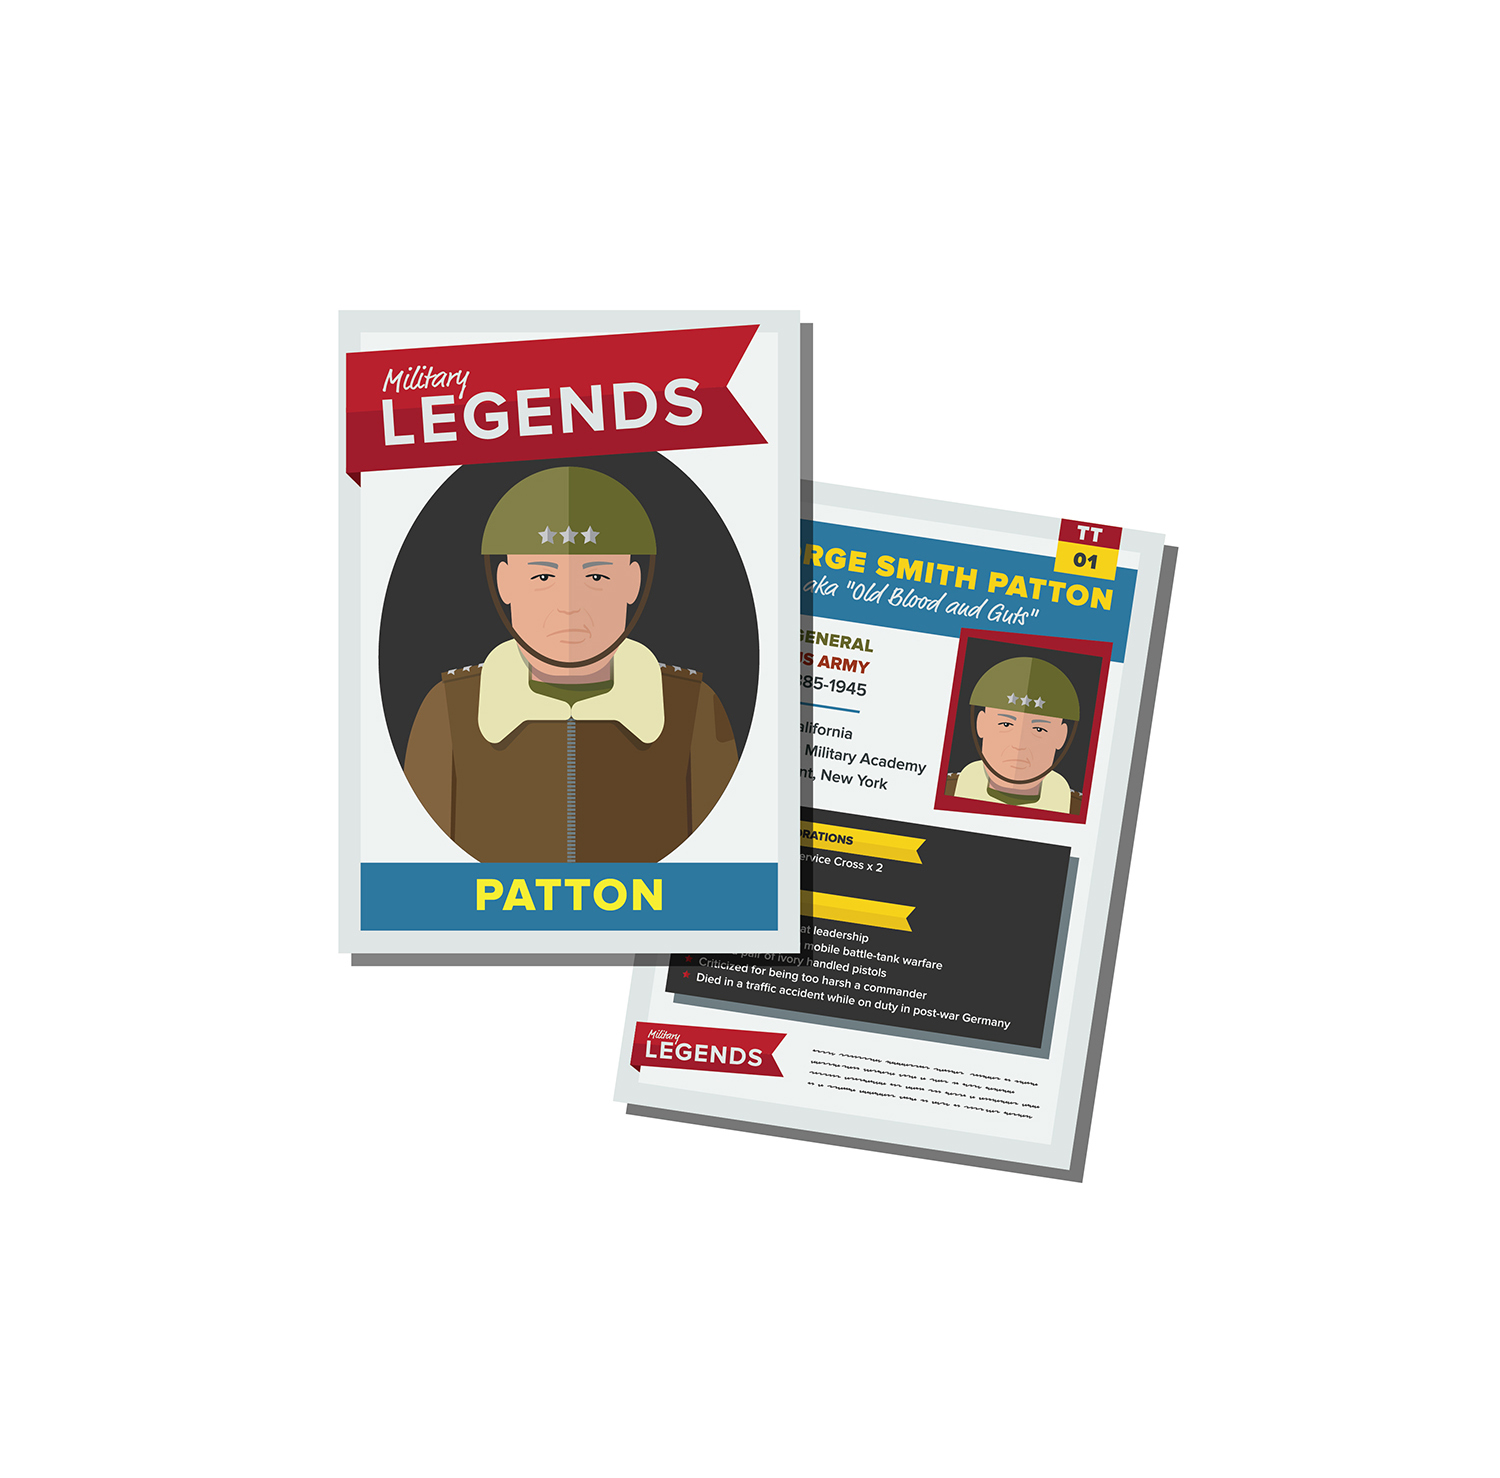 Legends-PATTON-01.jpg